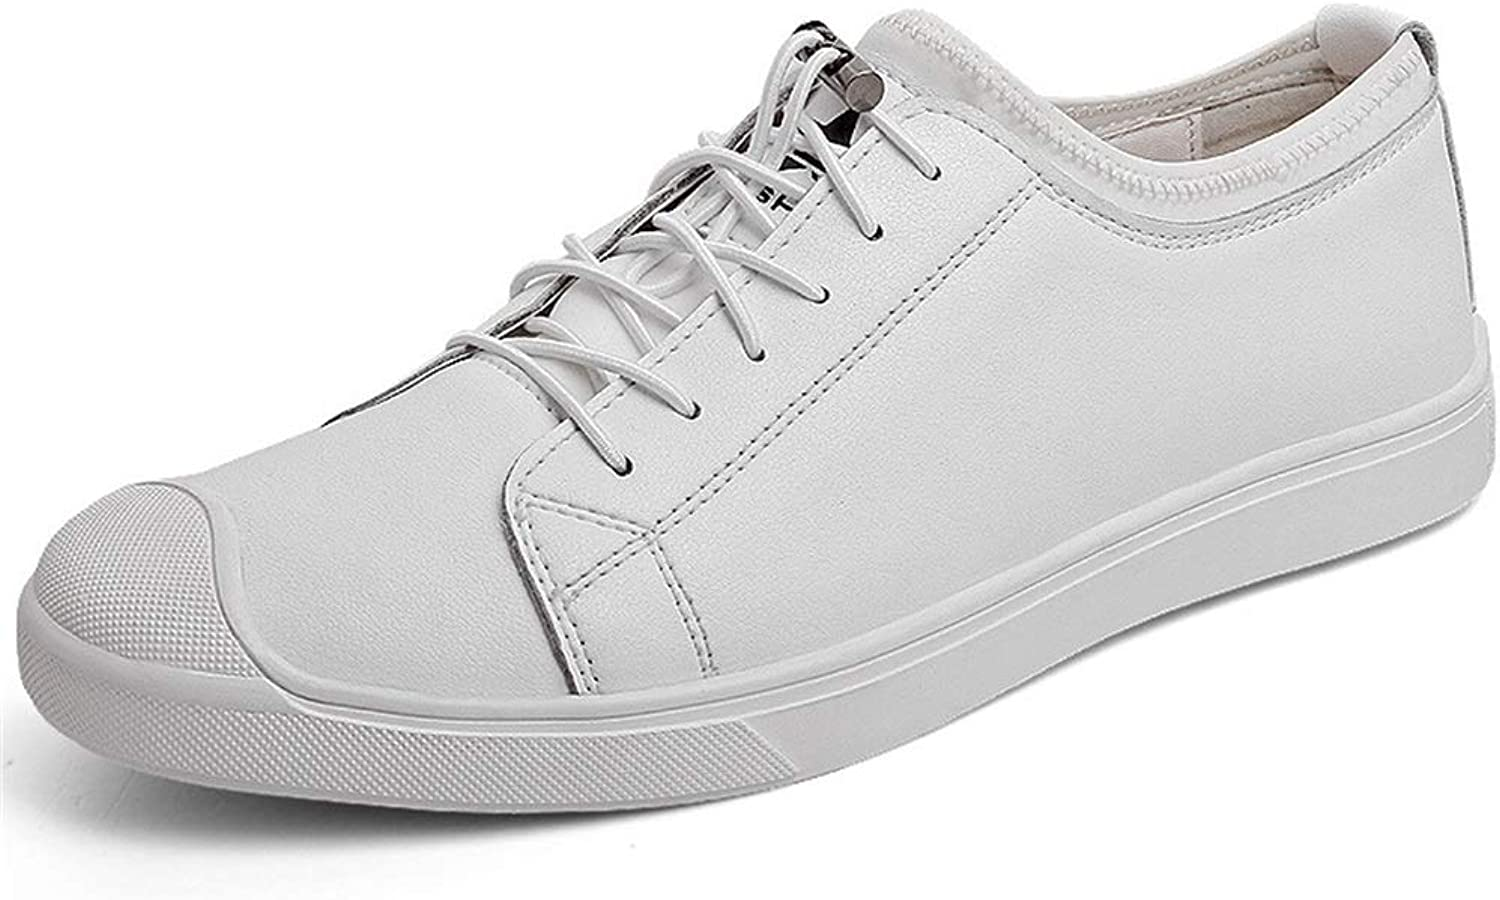 Men's Deck shoes, Low-top Leather shoes Anti-Slip Loafers & Slip-Ons Business Casual shoes Low-top Casual shoes Black White YAN (color   White, Size   41)